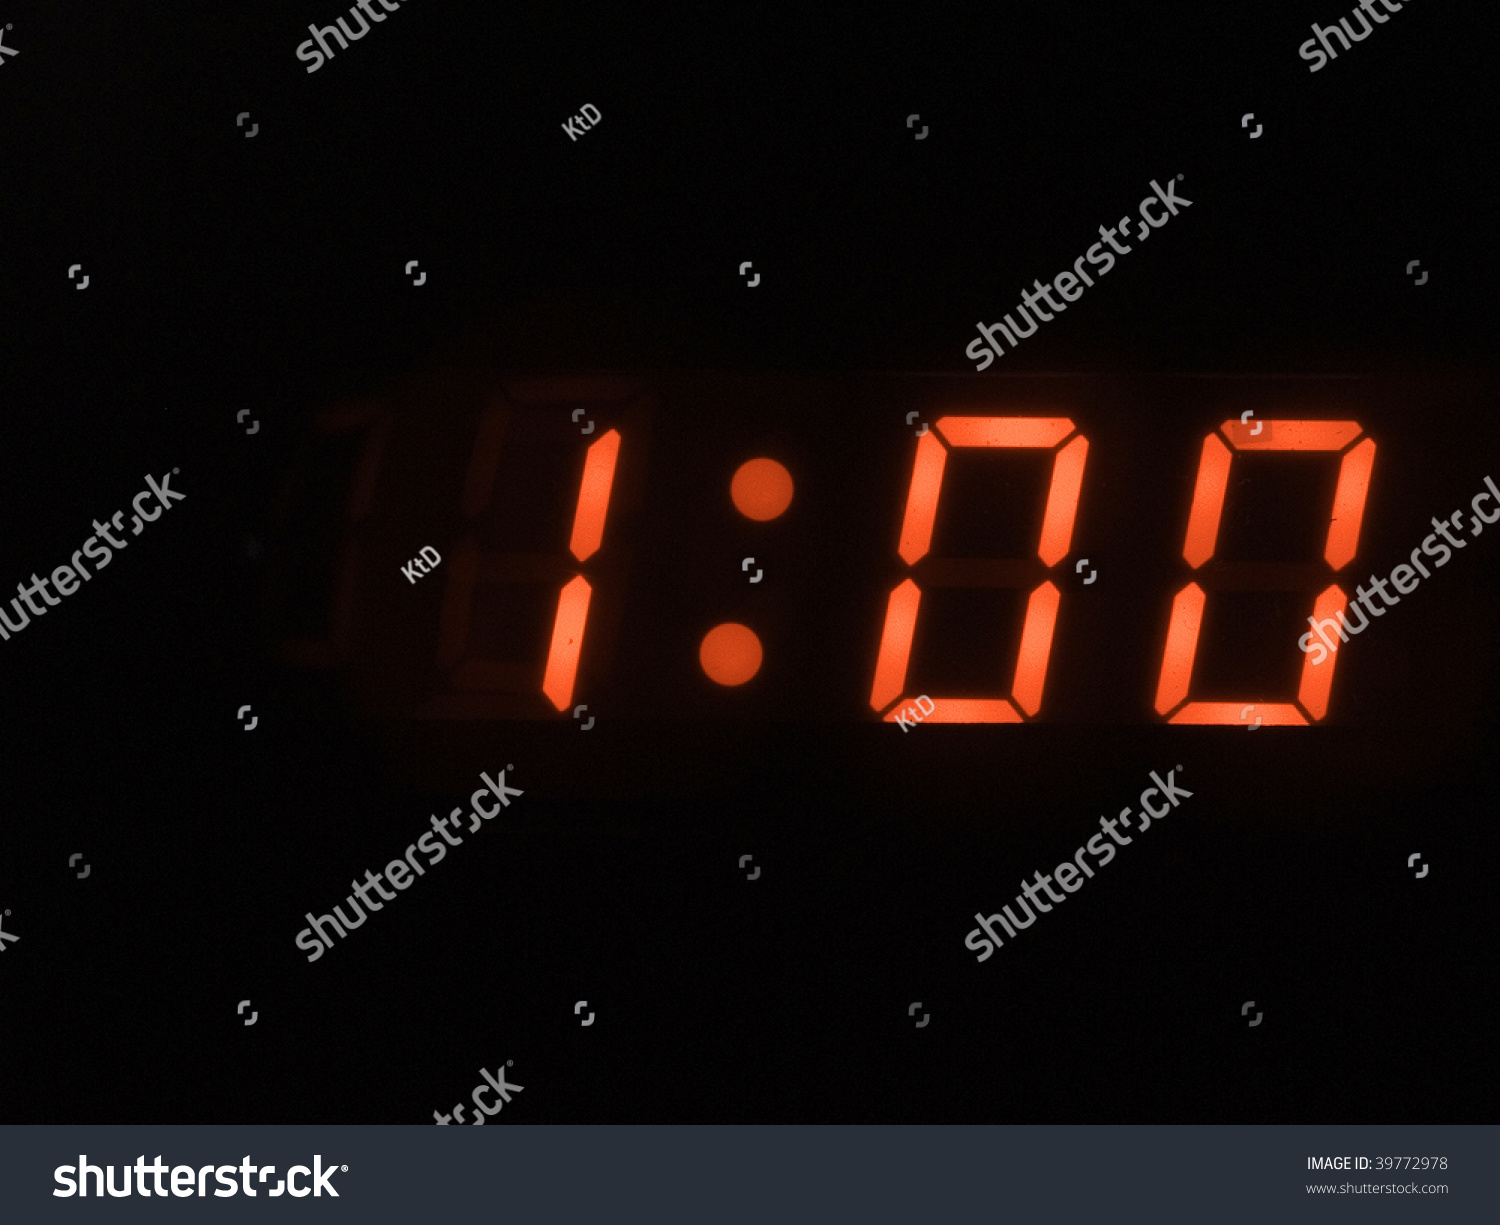 One O Clock Stock Photo 39772978 - Shutterstock